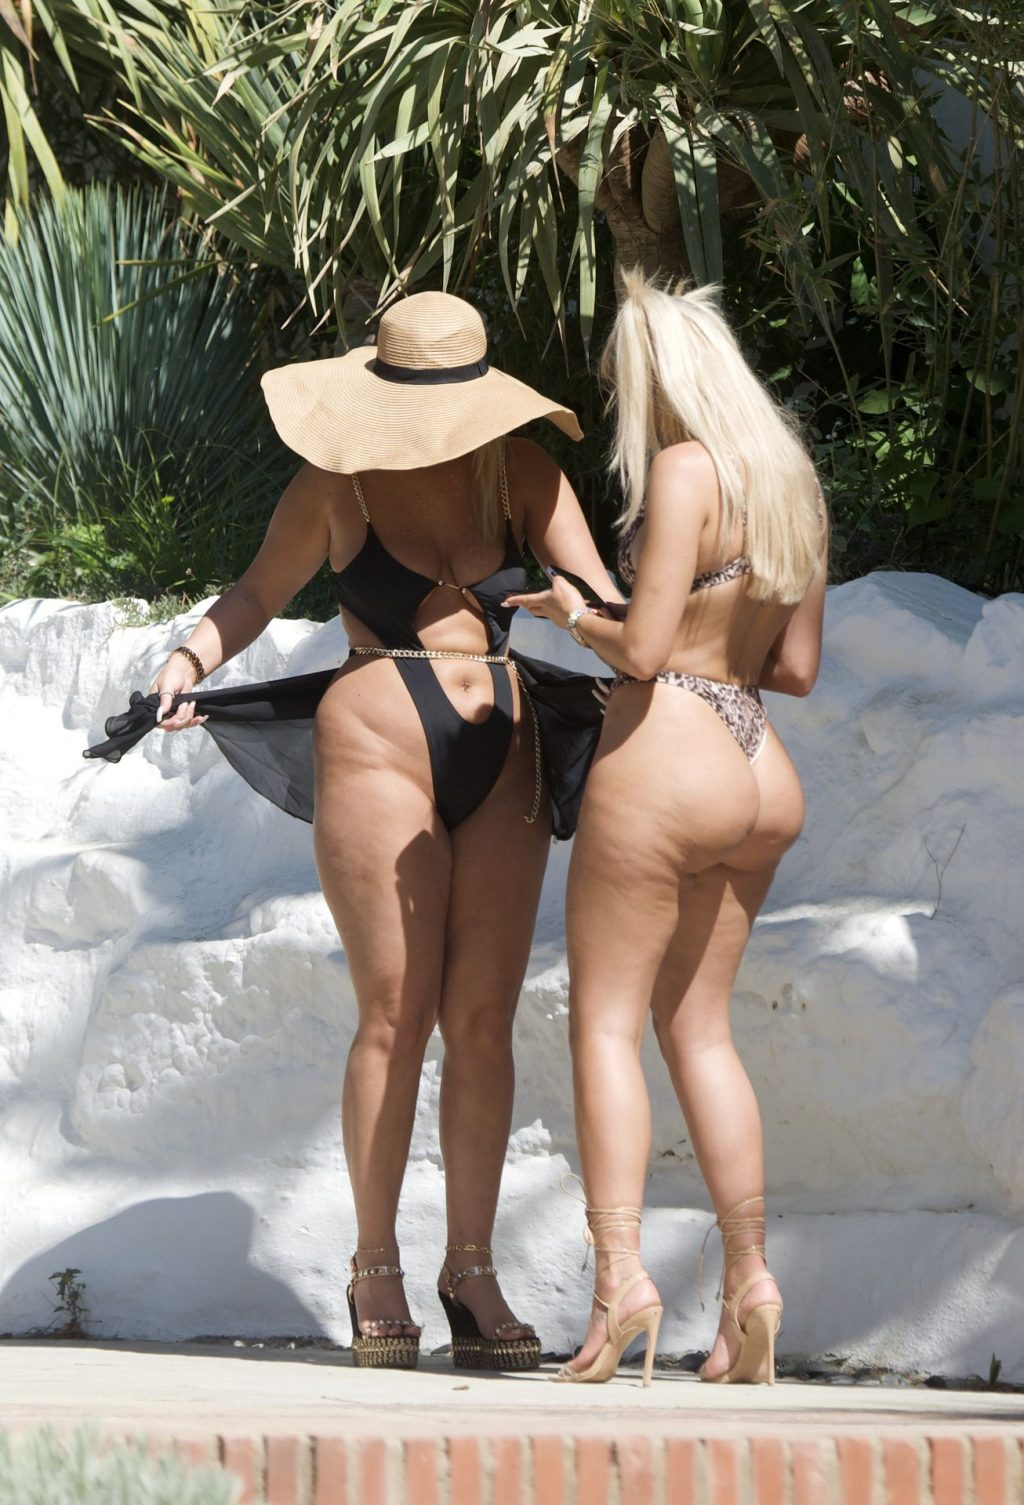 Chloe Ferry & Bethan Kershaw Get the Temperatures Soaring Out on Their Holiday in Marbella (65 Photos)